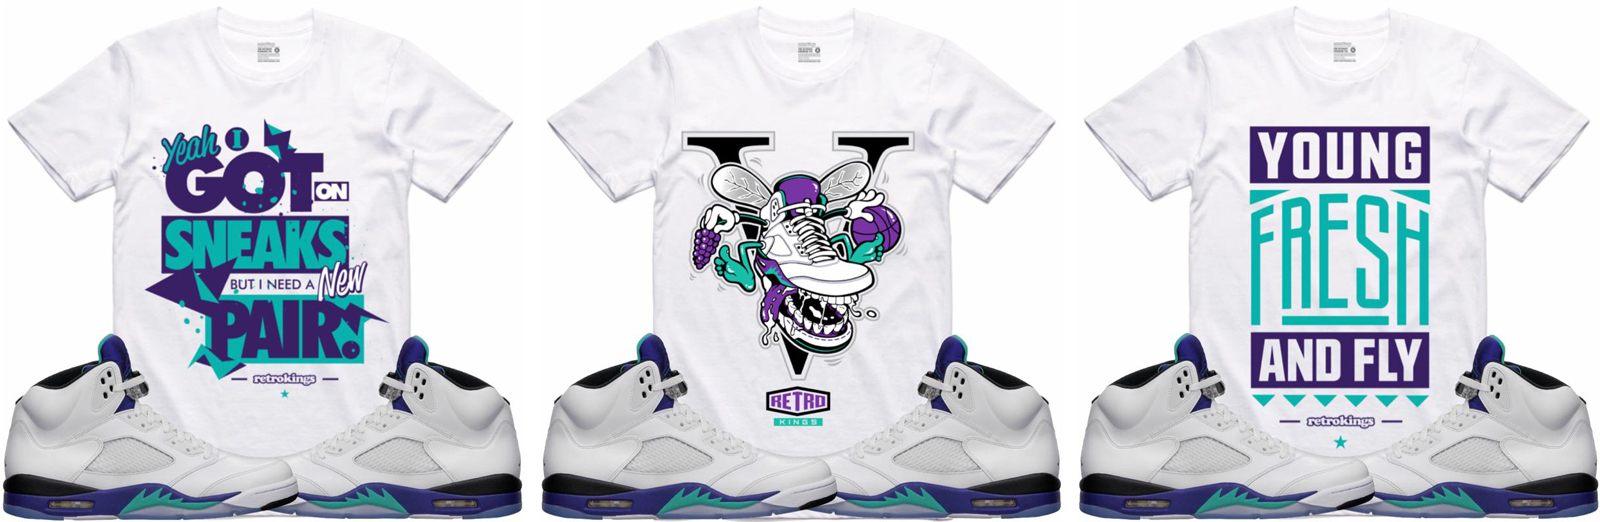 air-jordan-5-grape-fresh-prince-sneaker-shirts-retro-kings